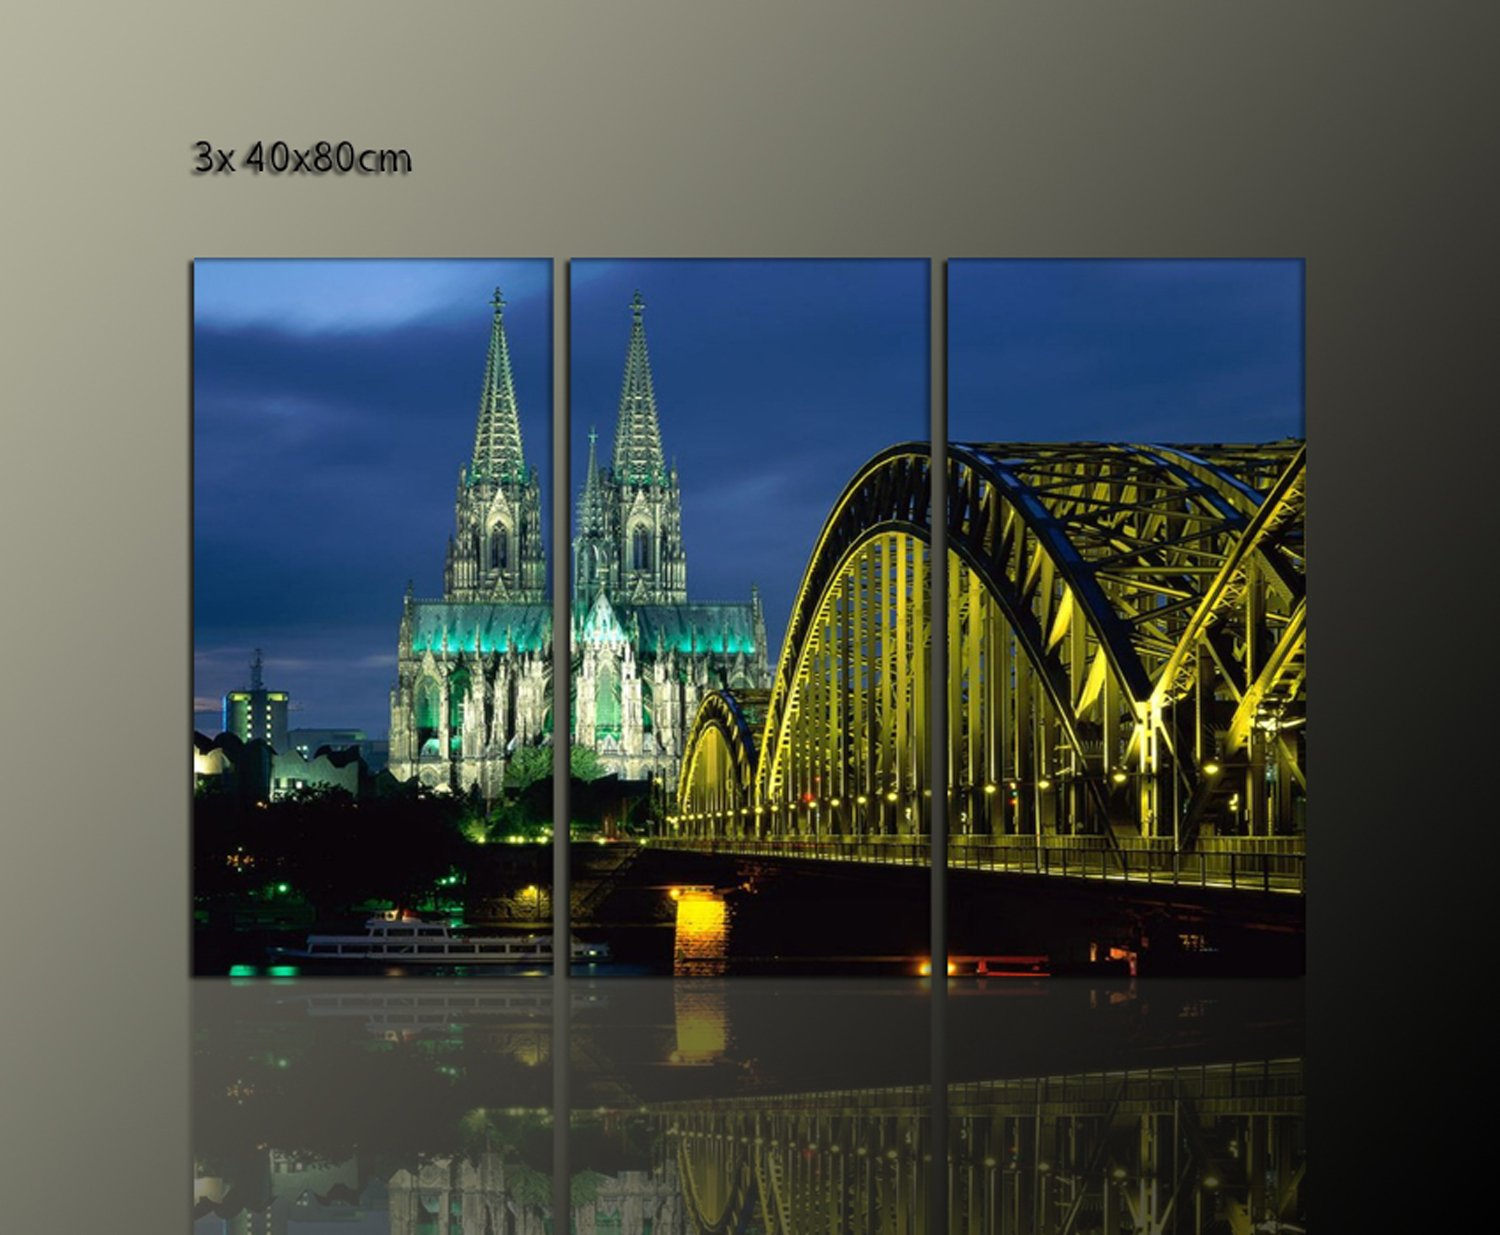 DOMBILD 3 Piece Wall Picture on Canvas, Framed (Cologne Cathedral 3 x 40 x 80 CM Cologne City Pictures Ready Framed on Stretcher Frame-Bonded fleece print on Leinwand. Good value including frame Cologne_Cathedral_3x40x80